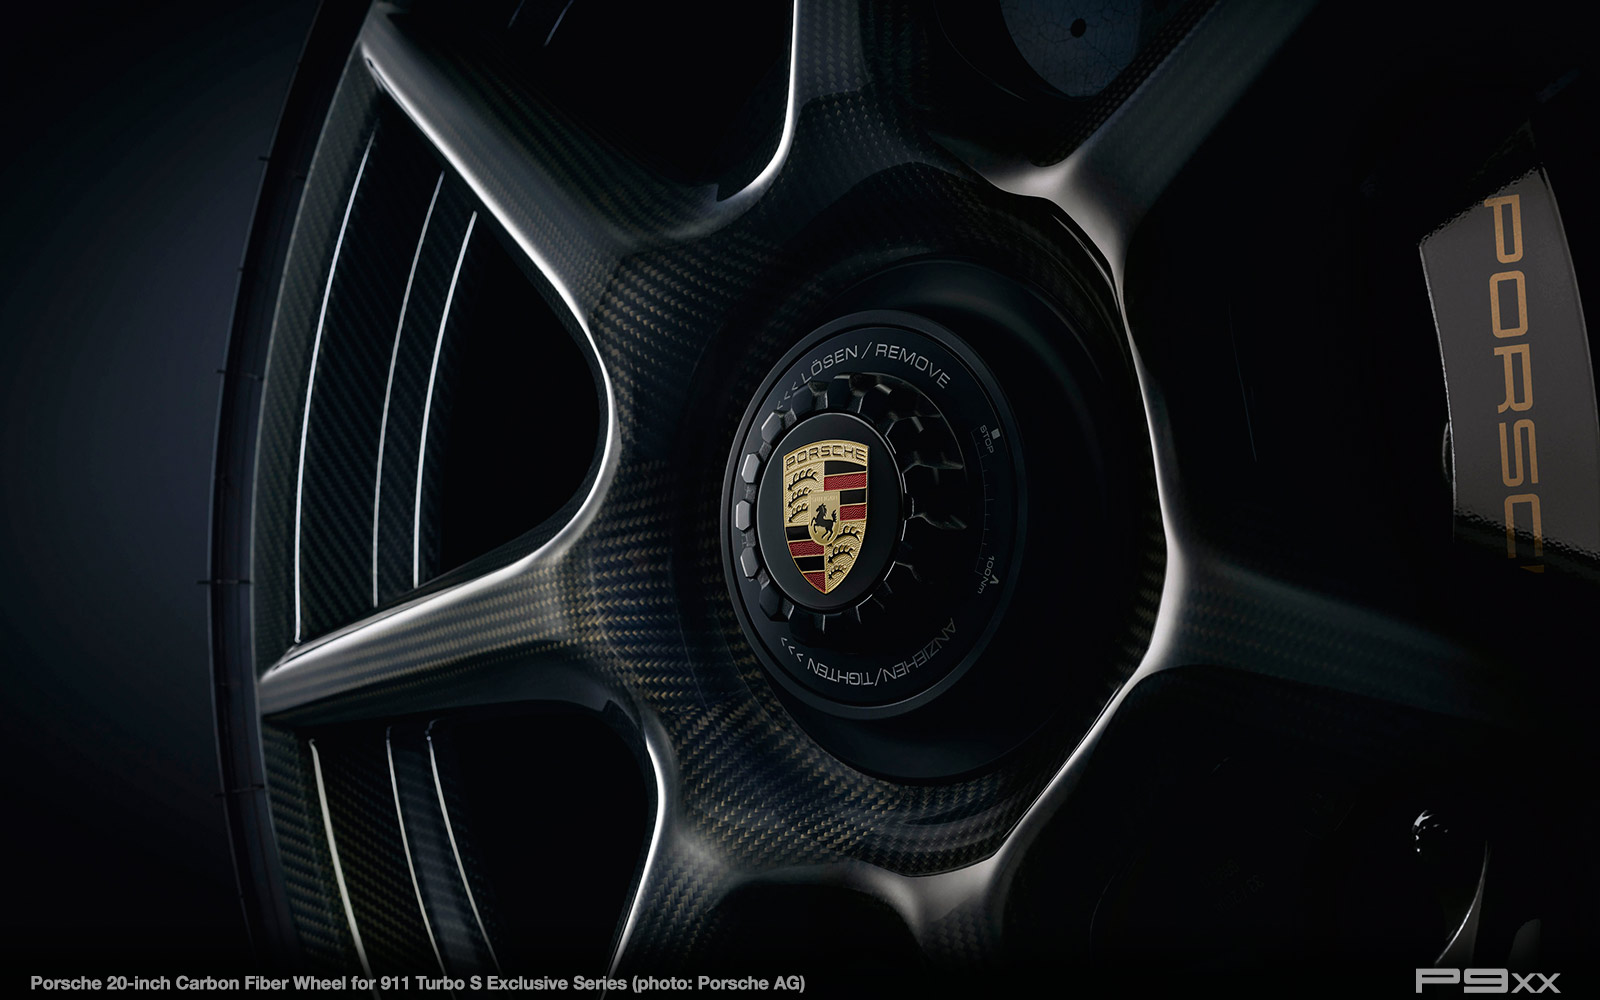 Porsche-911-Turbo-S-Exclusive-Series-Carbon-Fiber-Wheel-521